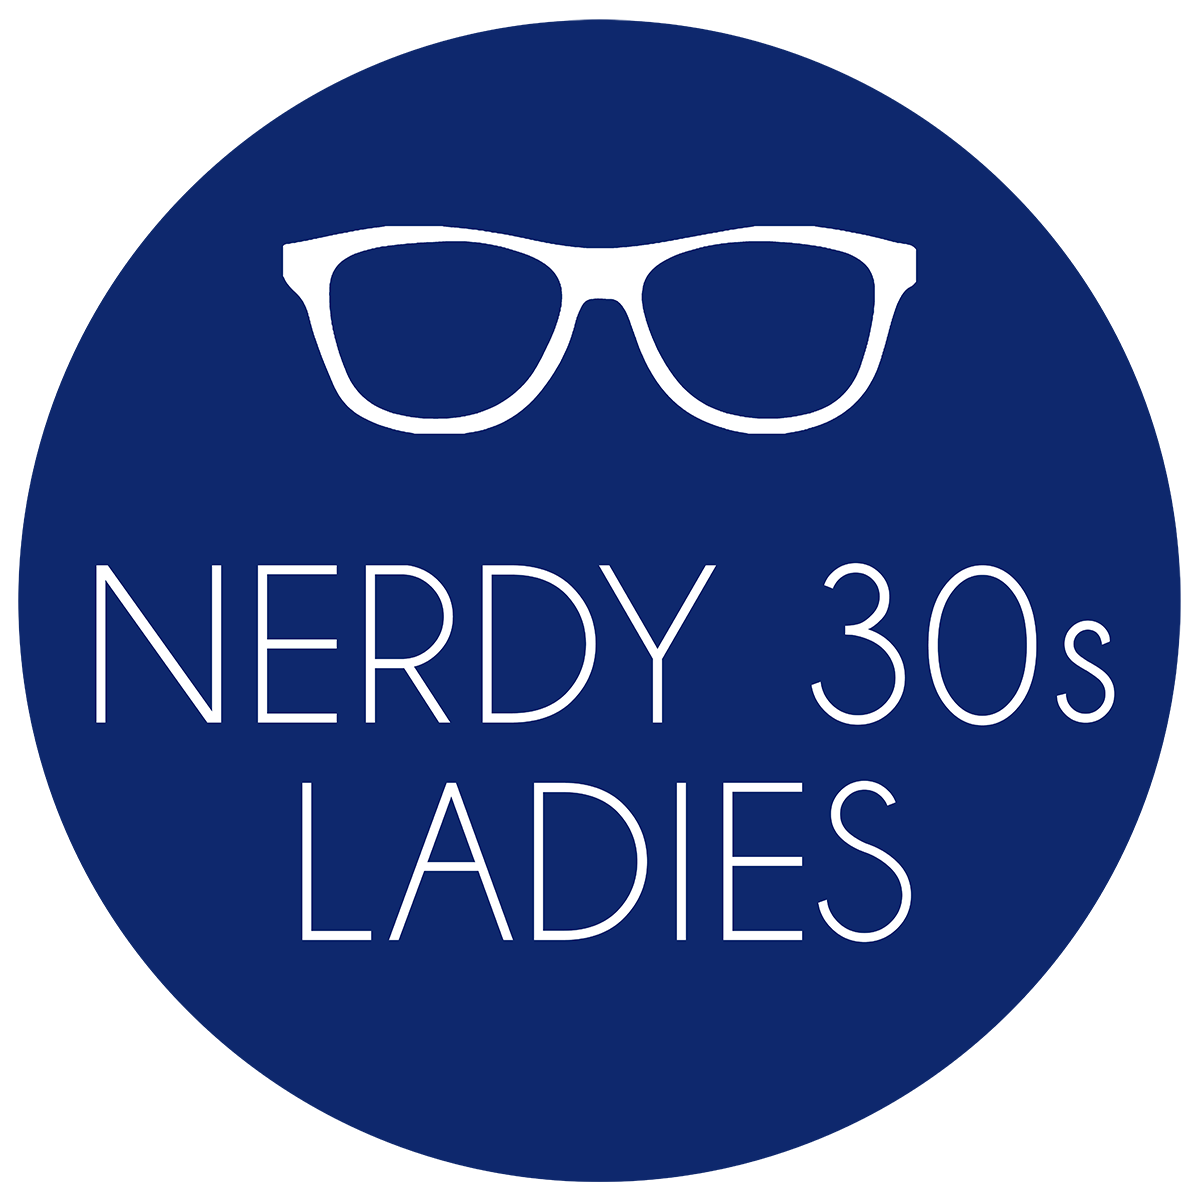 Nerdy 30s Ladies